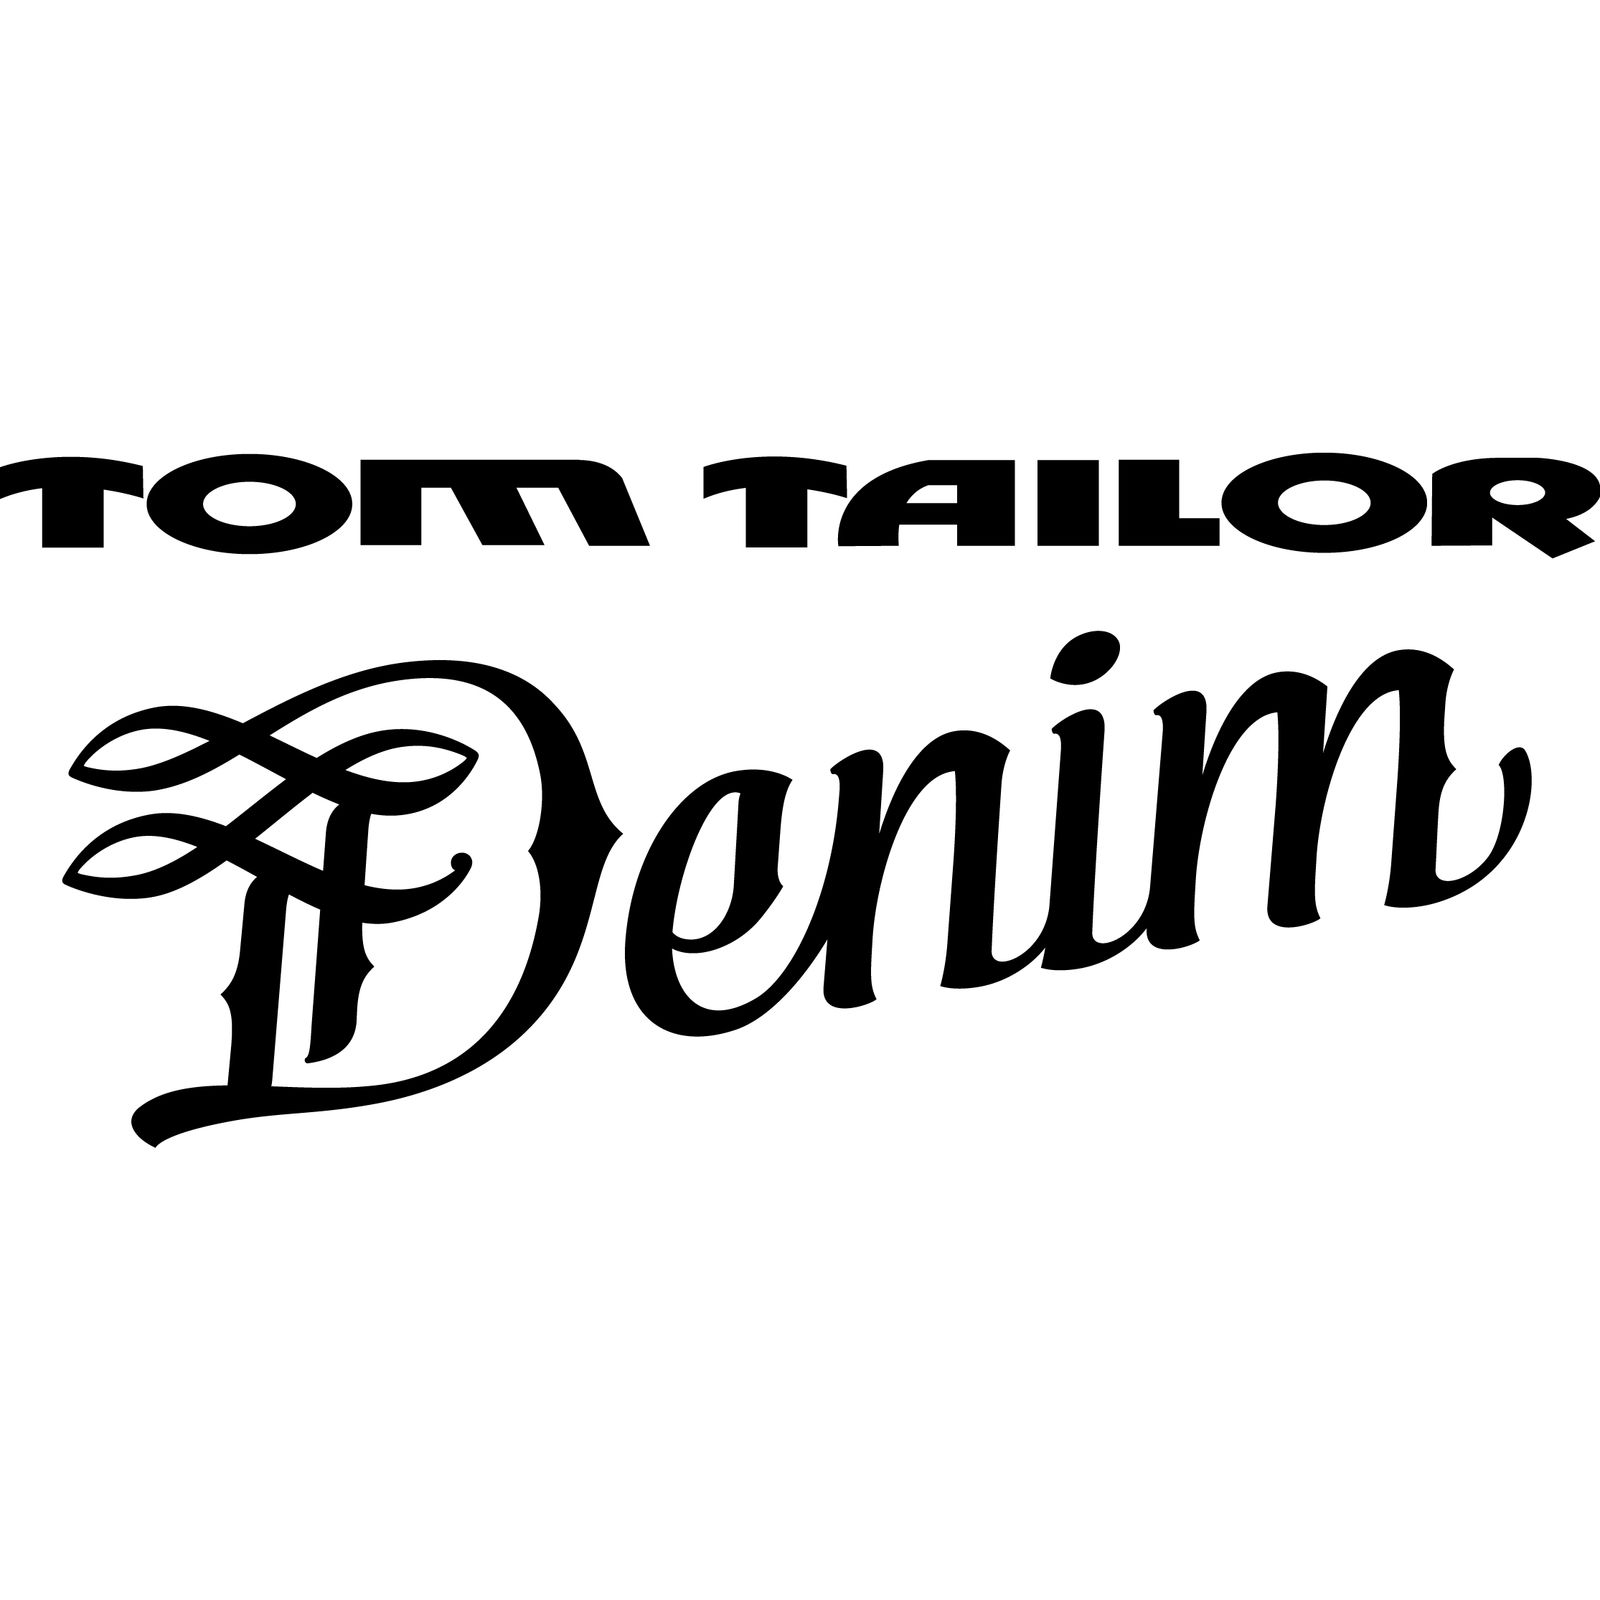 TOM TAILOR Denim (Bild 1)